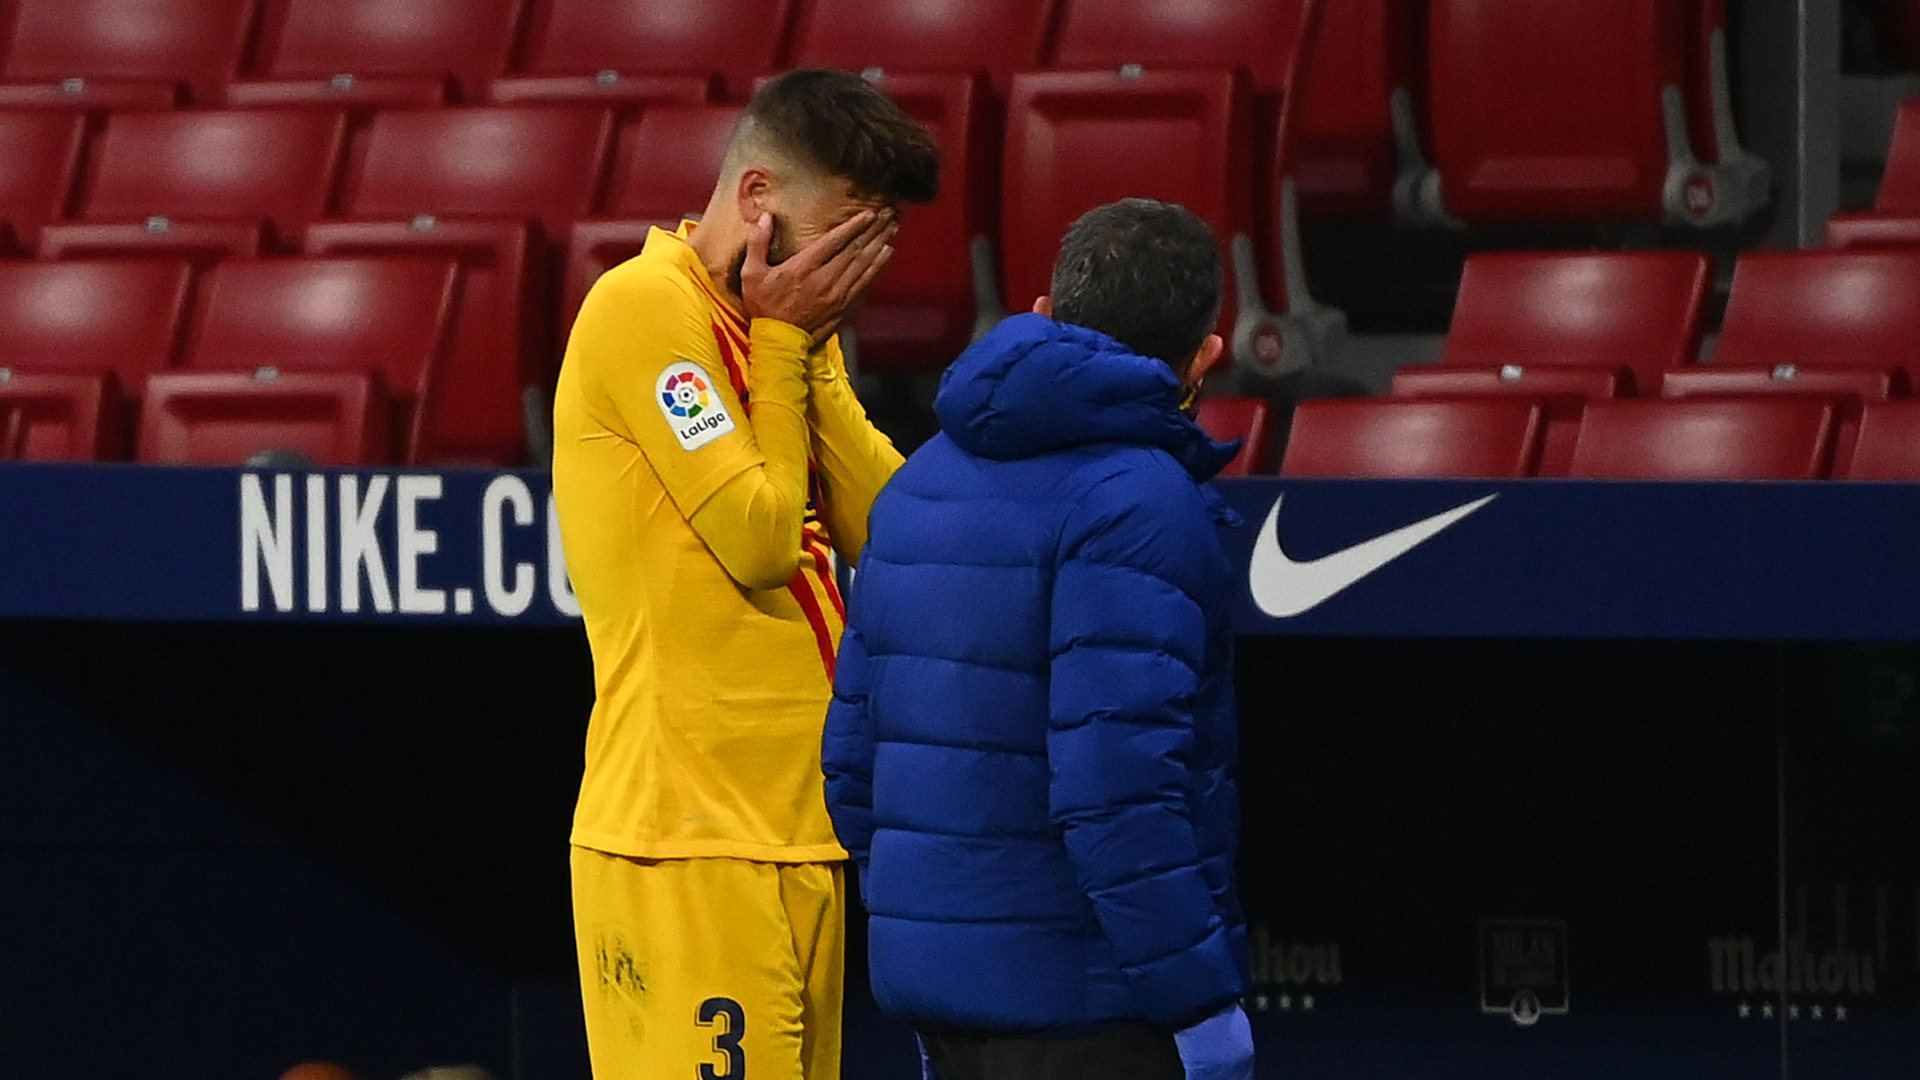 Pique suffers nasty knee injury in Atletico match